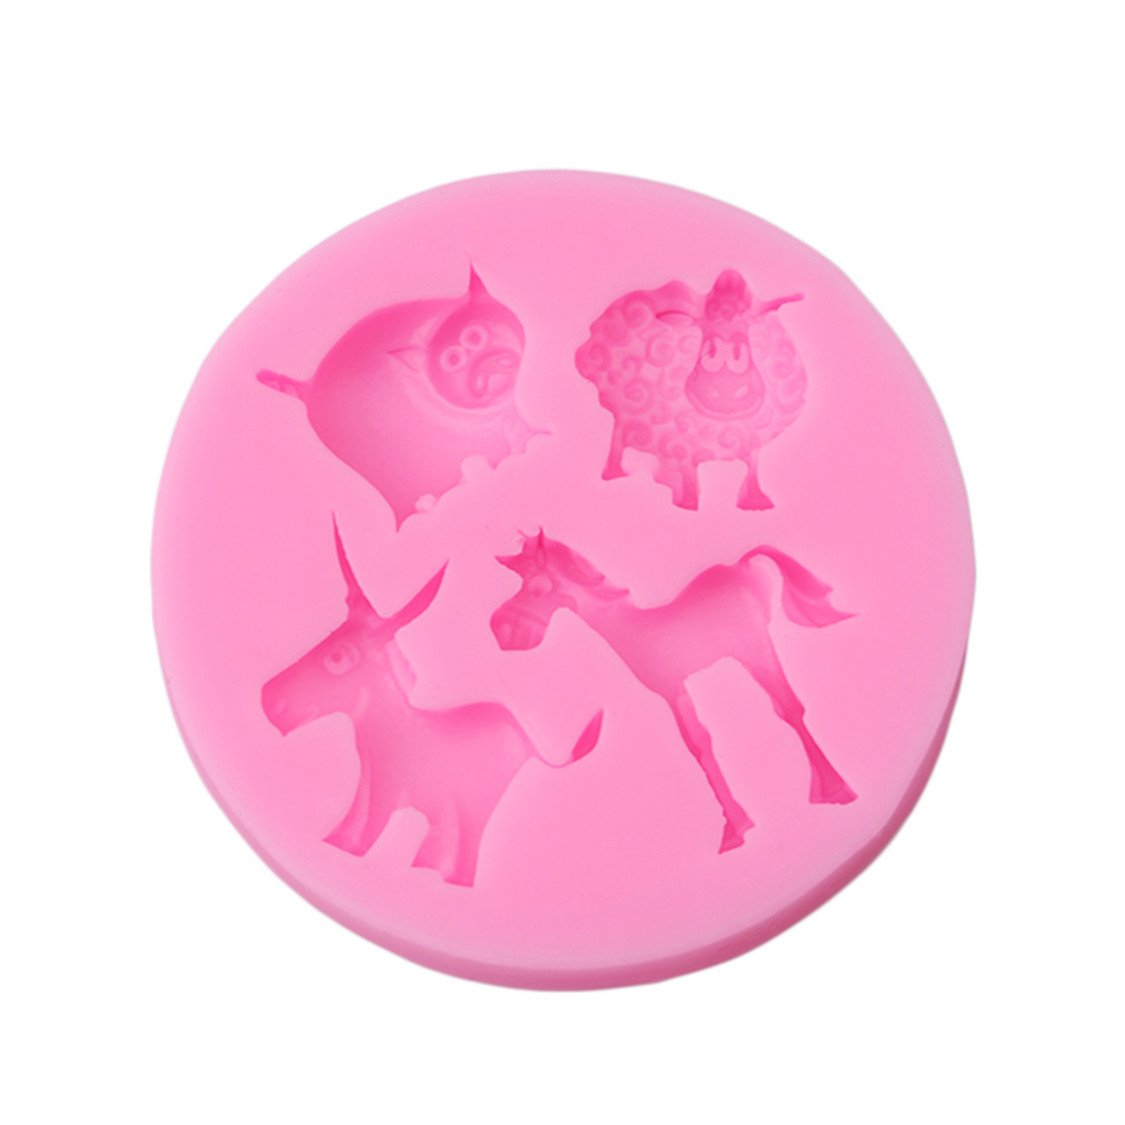 Idiytip Silicone Fondant Cake Icing Sugarcraft Decorating Mold Tools Chocolate Cake Jelly Candy Baking Mould 4 Holes Pink Animal QingYing